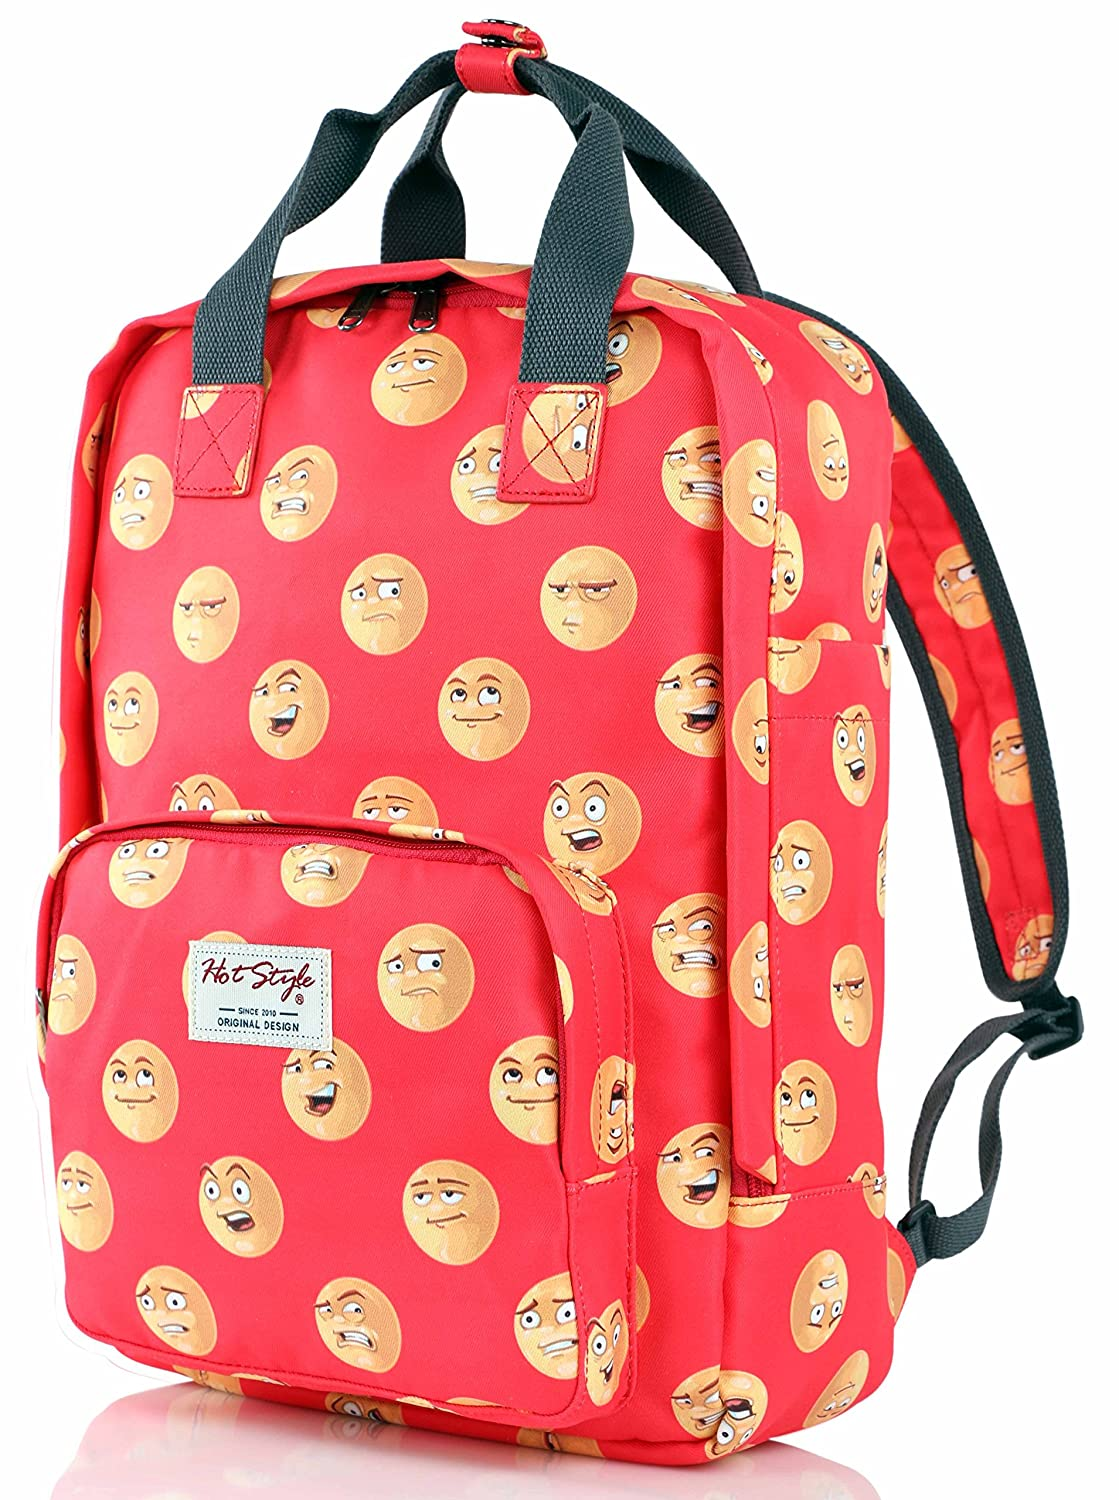 Hotstyle Funny CuteバックパックPurse |女の子| Holds 13インチノートパソコン  D164A, Emoji B01N5HDERP